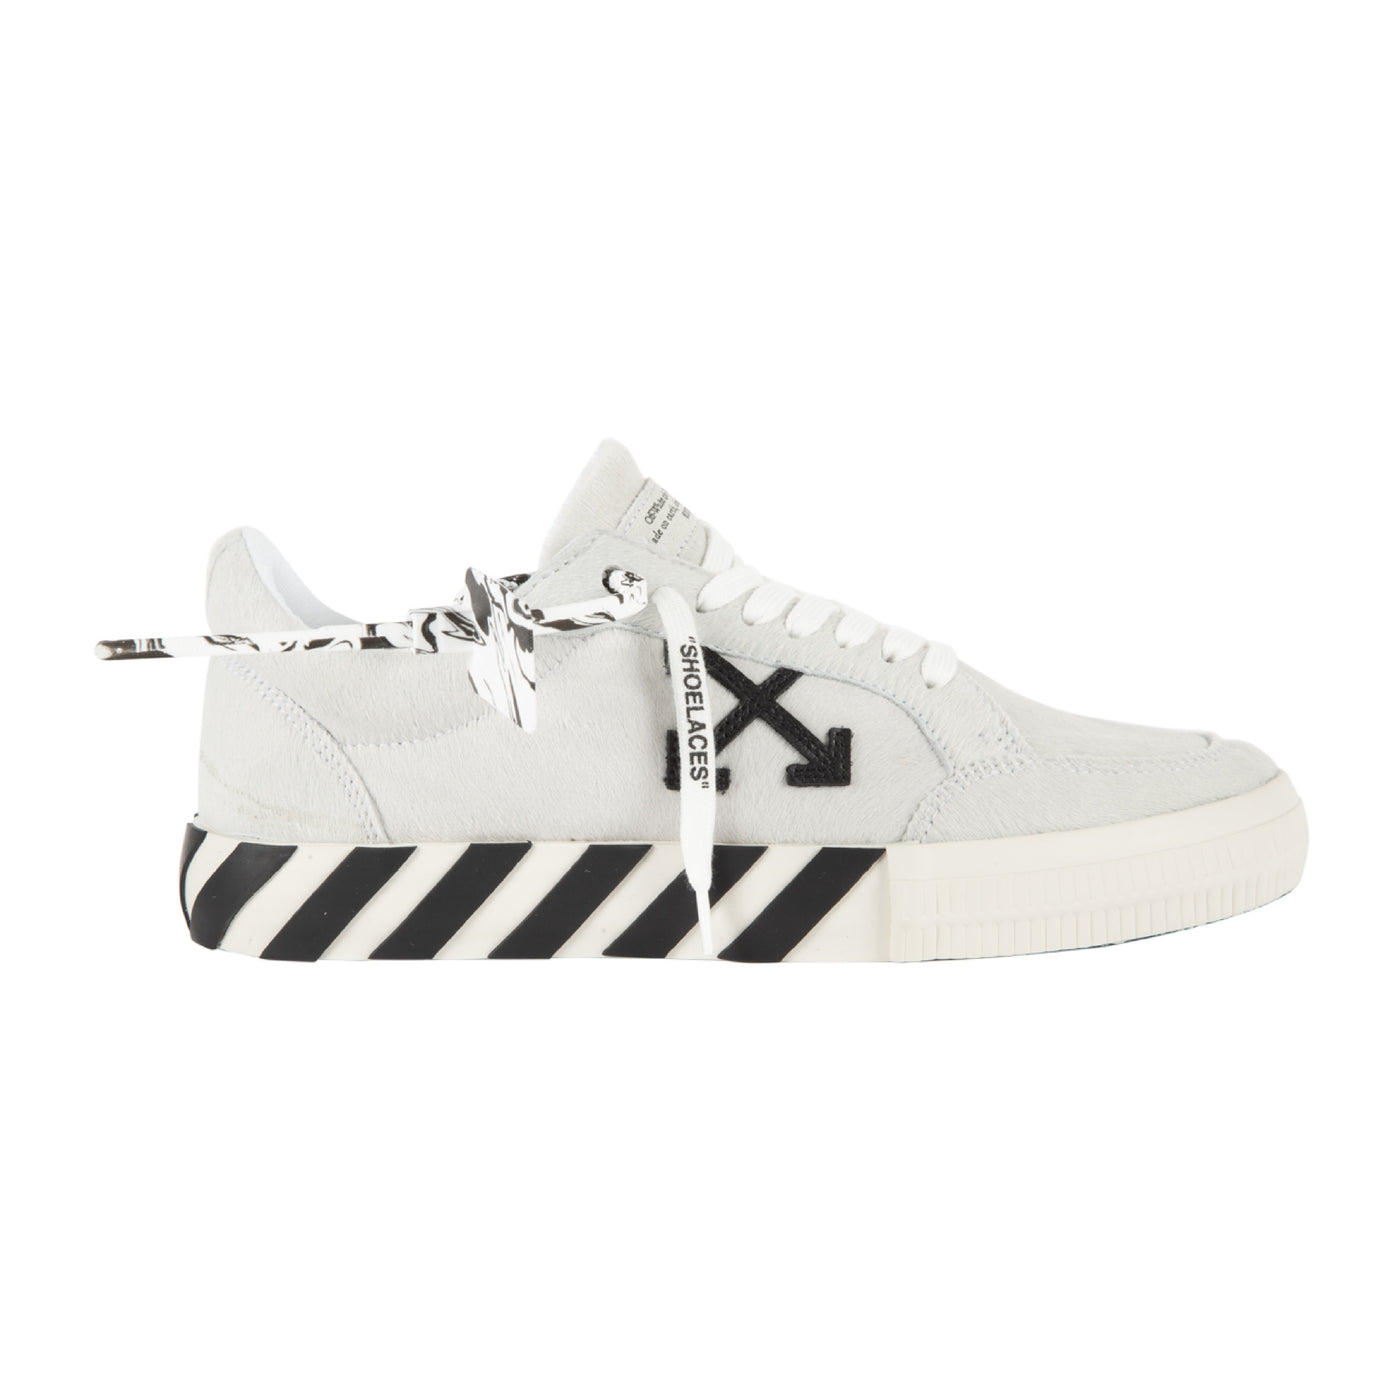 Load image into Gallery viewer, OFF-WHITE PONY LOW VULCANIZED SNEAKER WHITE